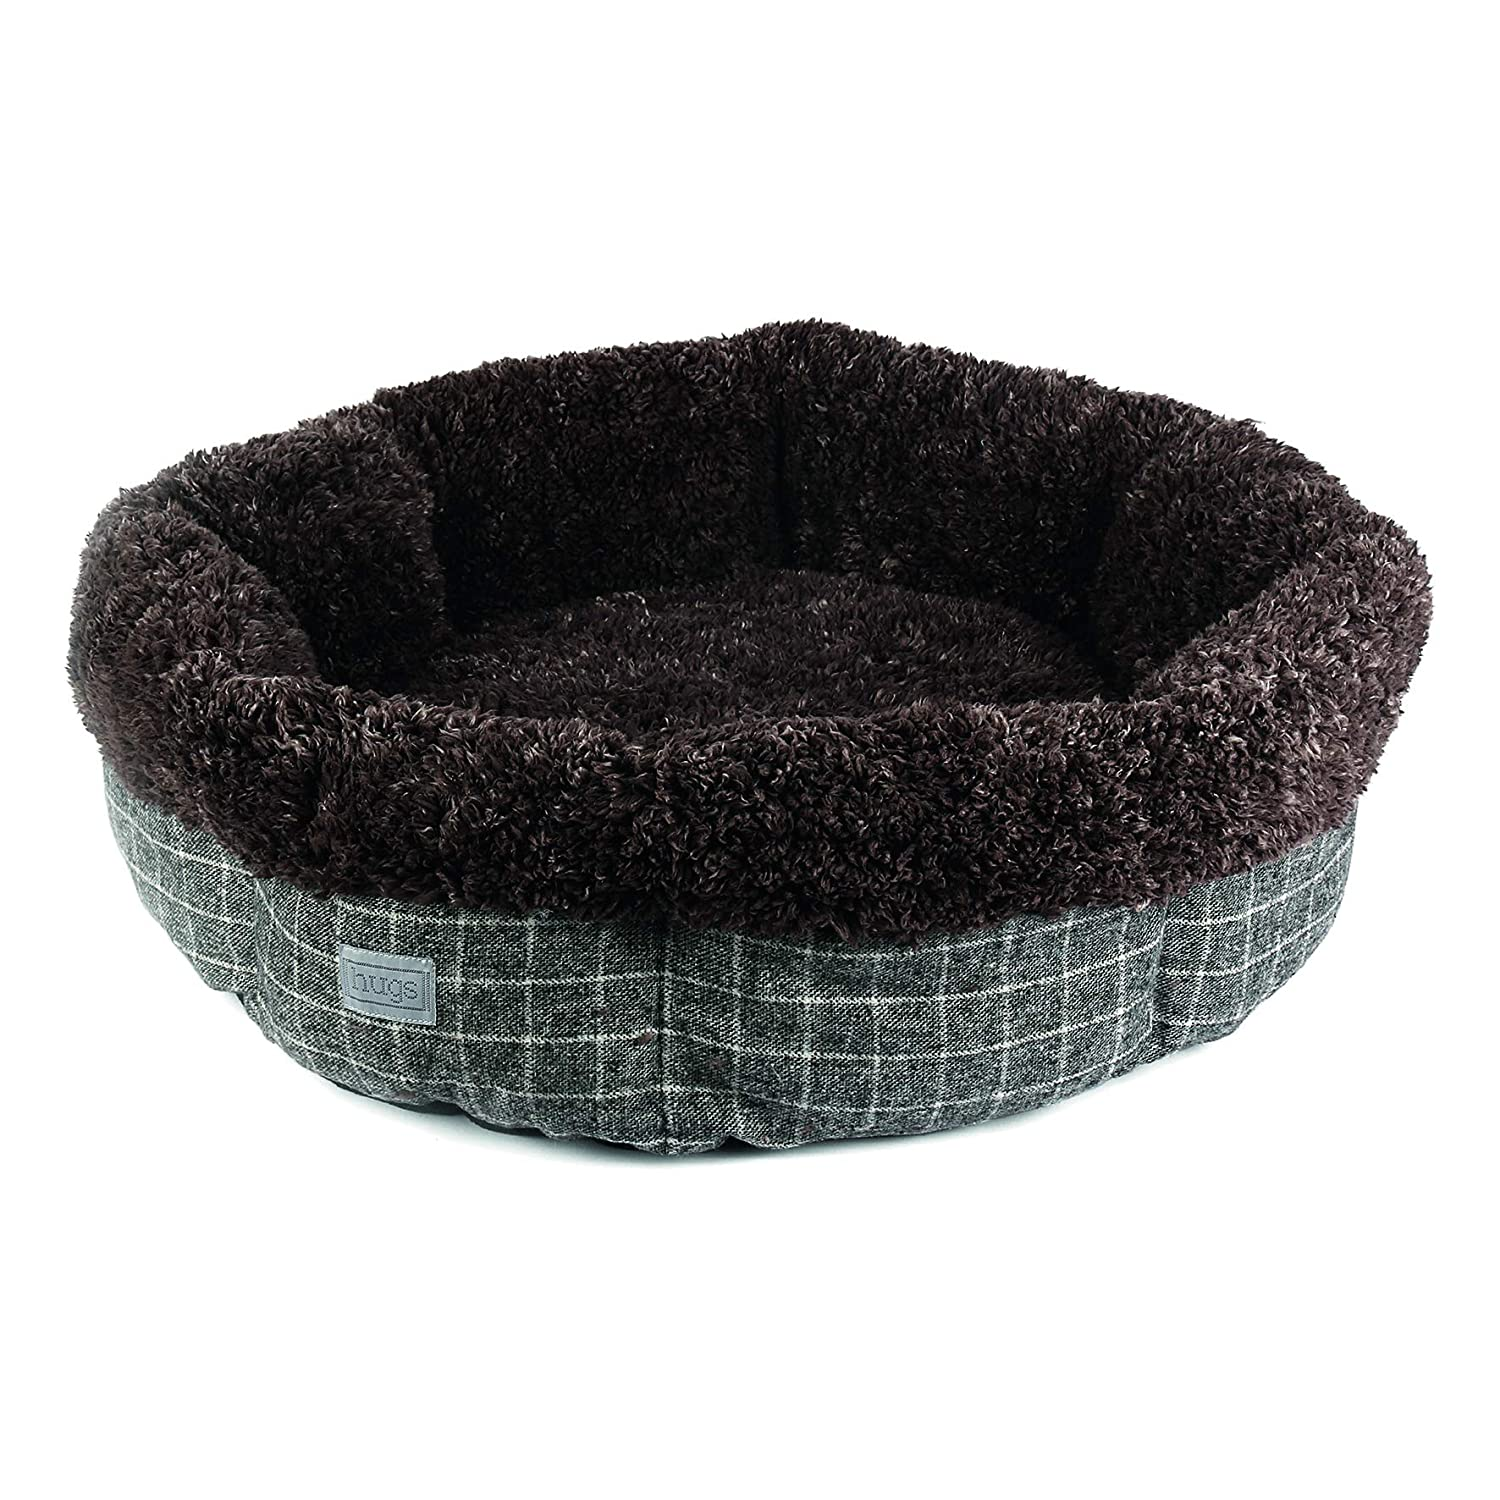 Arlo Design 34\ Arlo Design 34\ Hugs by Happy Pet Hugs by Happy Pet Arlo Round Bed XL, XL